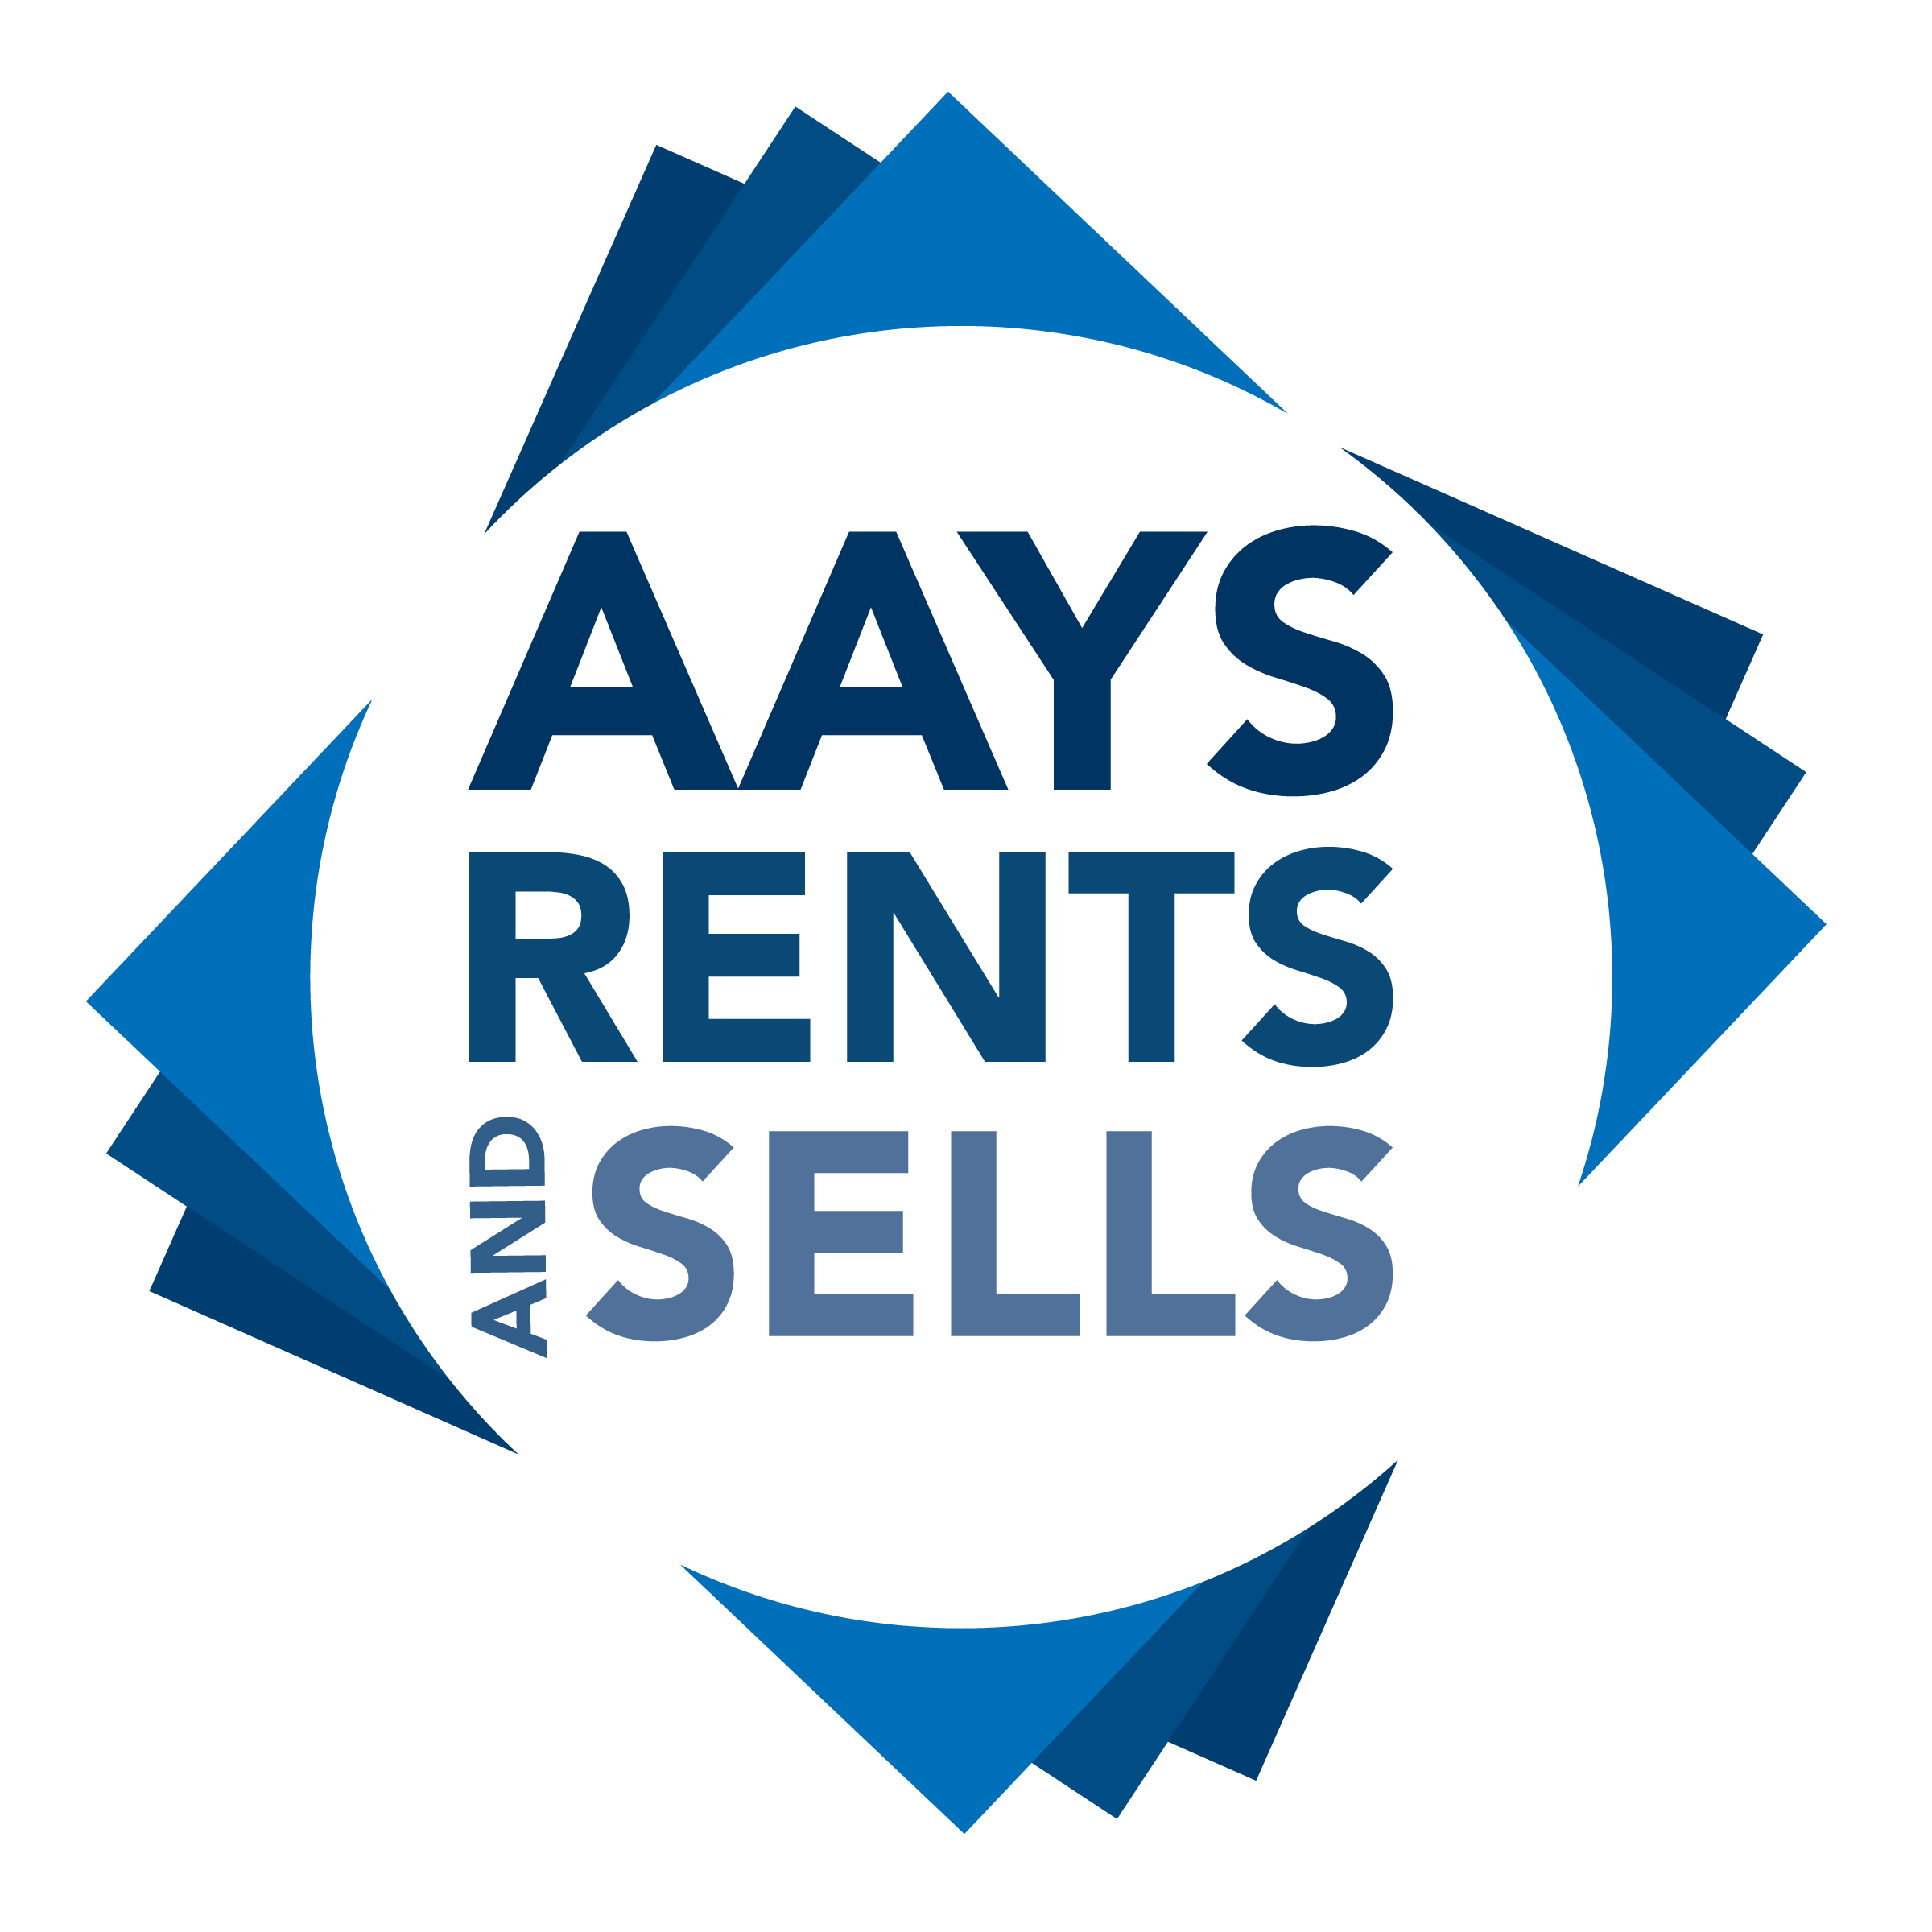 Rents Com: AAYS Rents & Sells Inc. Coupons Near Me In San Jose